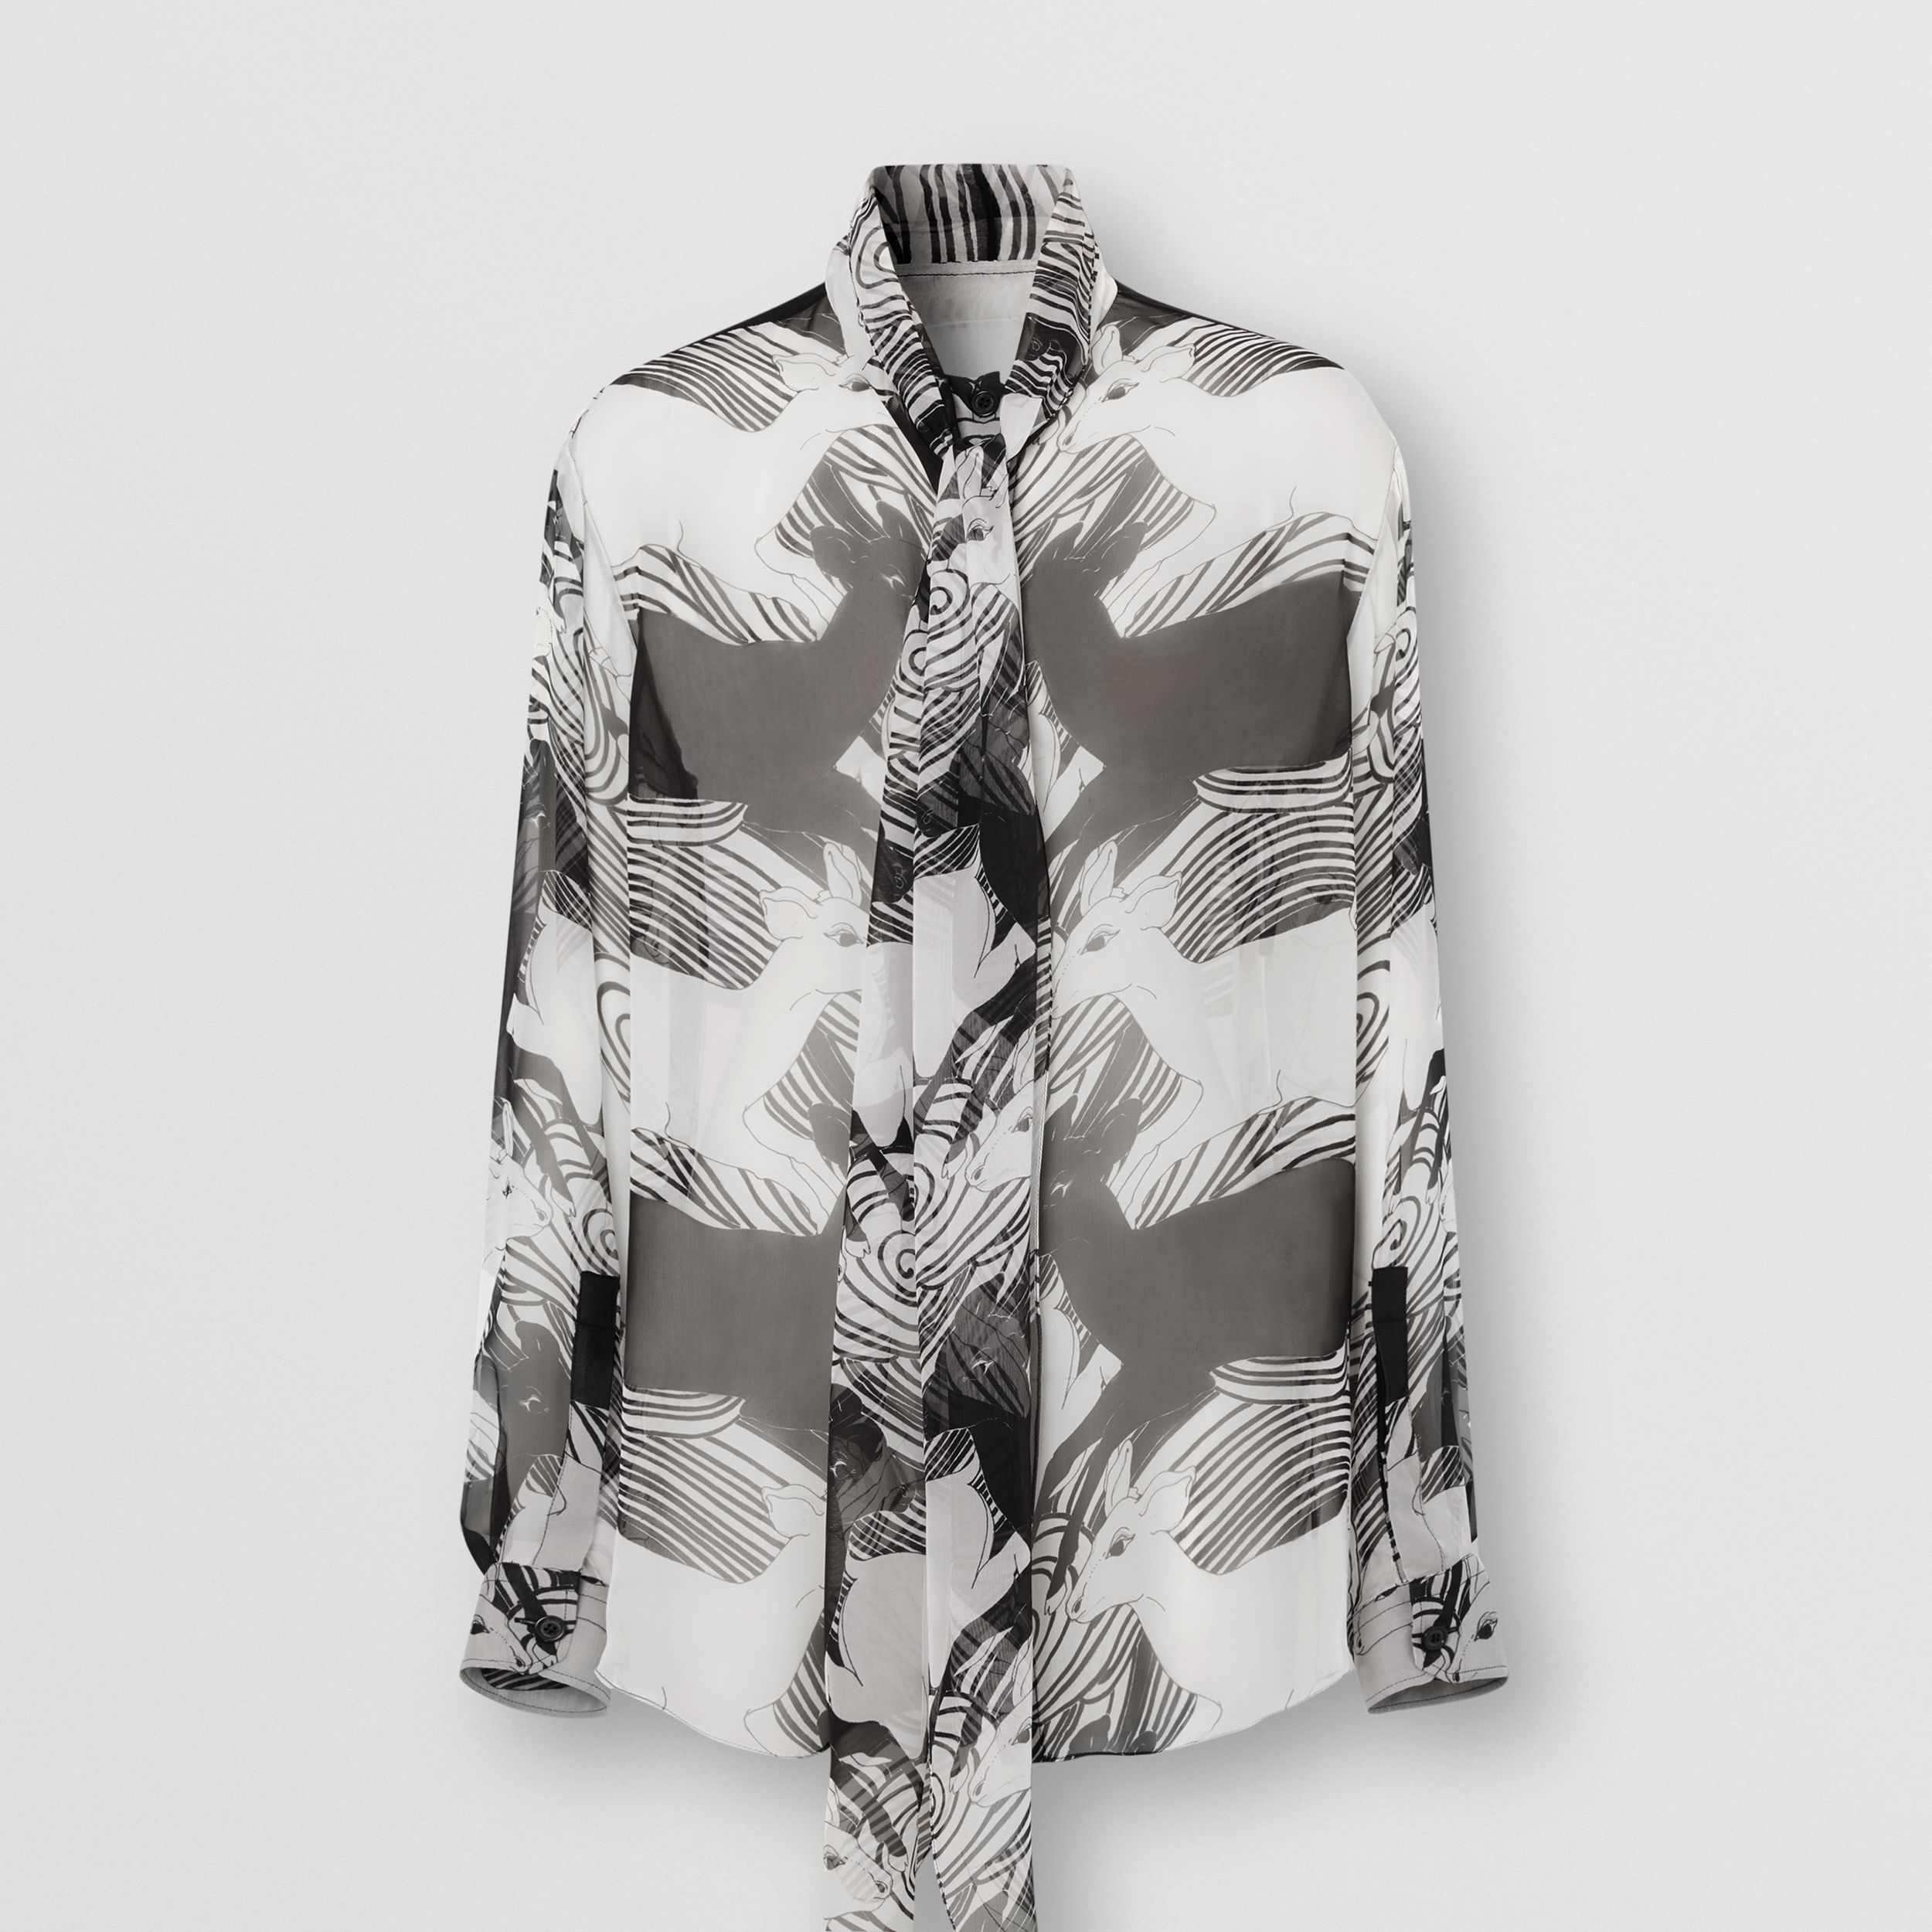 Deer Print Silk Chiffon Pussy-bow Blouse in Monochrome - Women | Burberry - 4